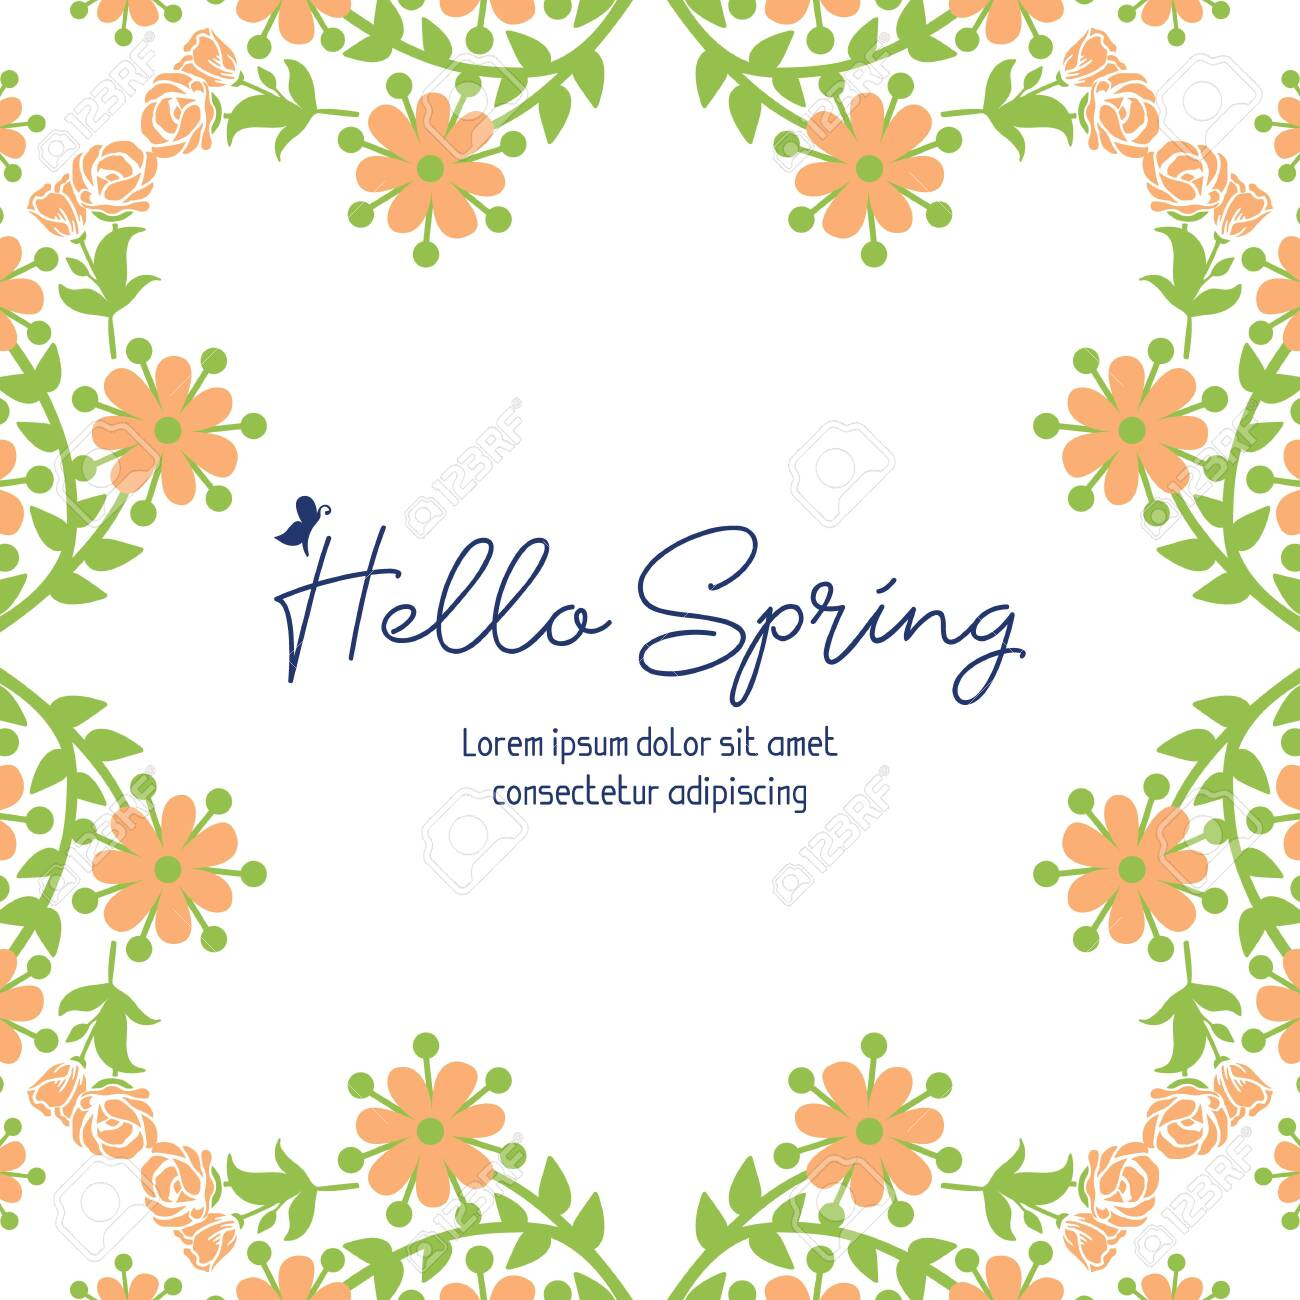 Hello Spring lettering with floral frame - 148331420